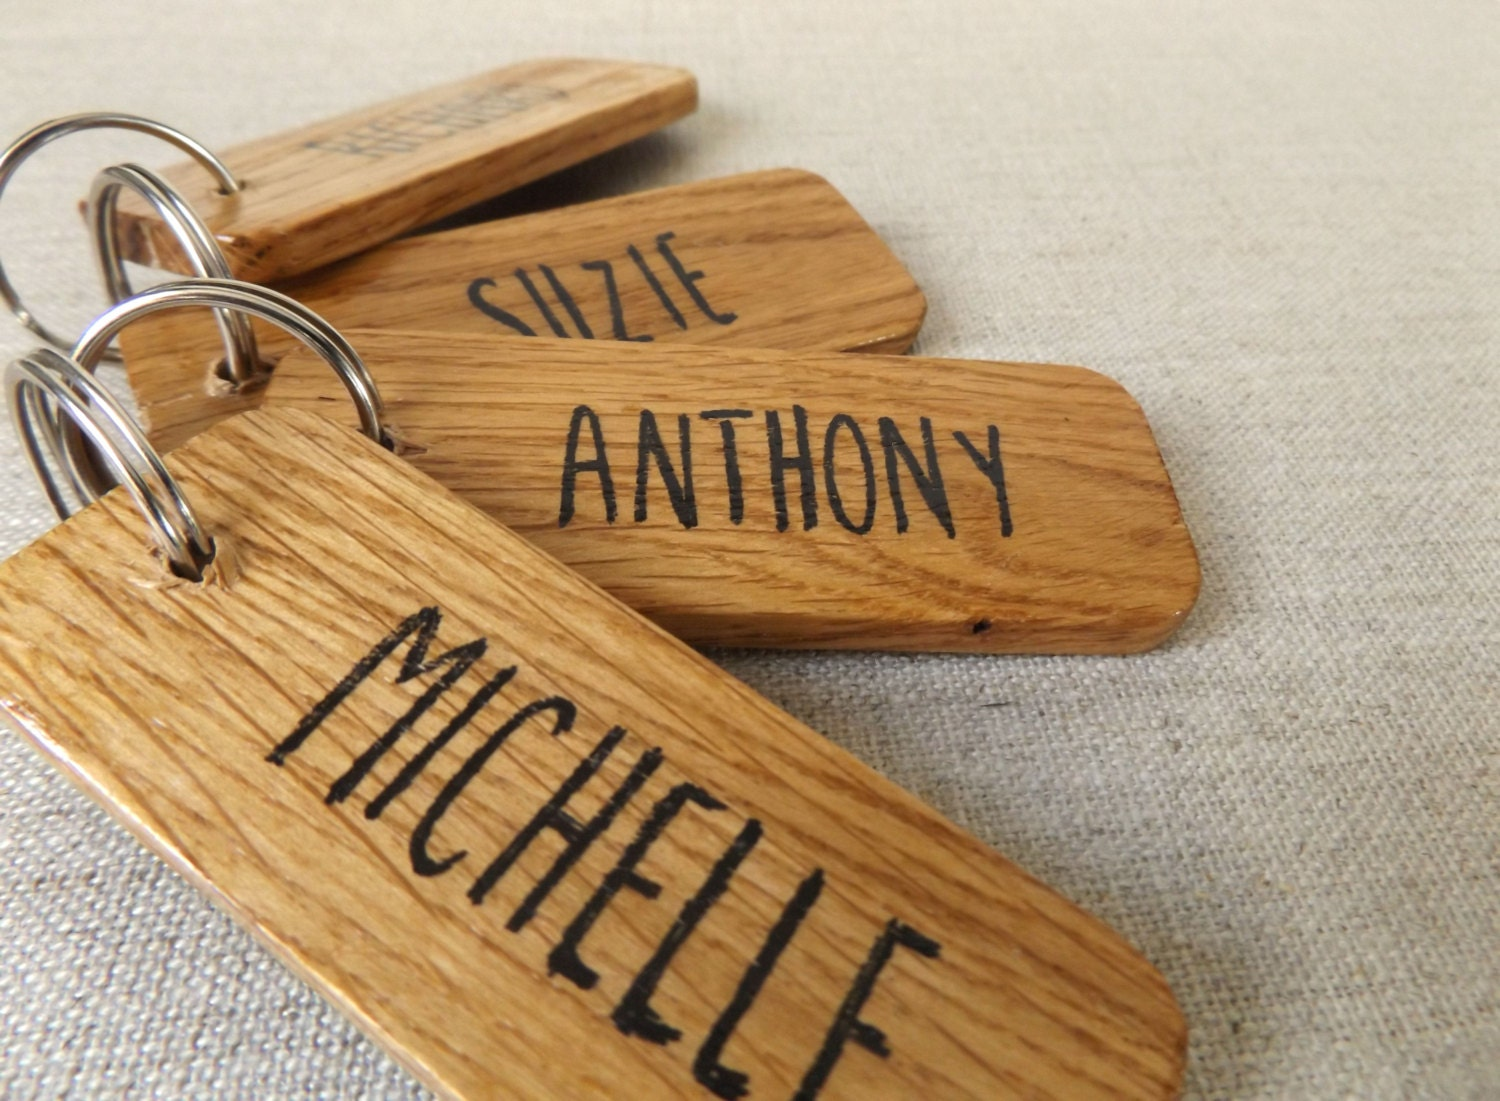 Set of 4 Team Keyrings  Personalised Name Keyring Set  Gift for Friendship Group  Squad Gift  Sports Team Souvenir  Oak Wood Keyrings